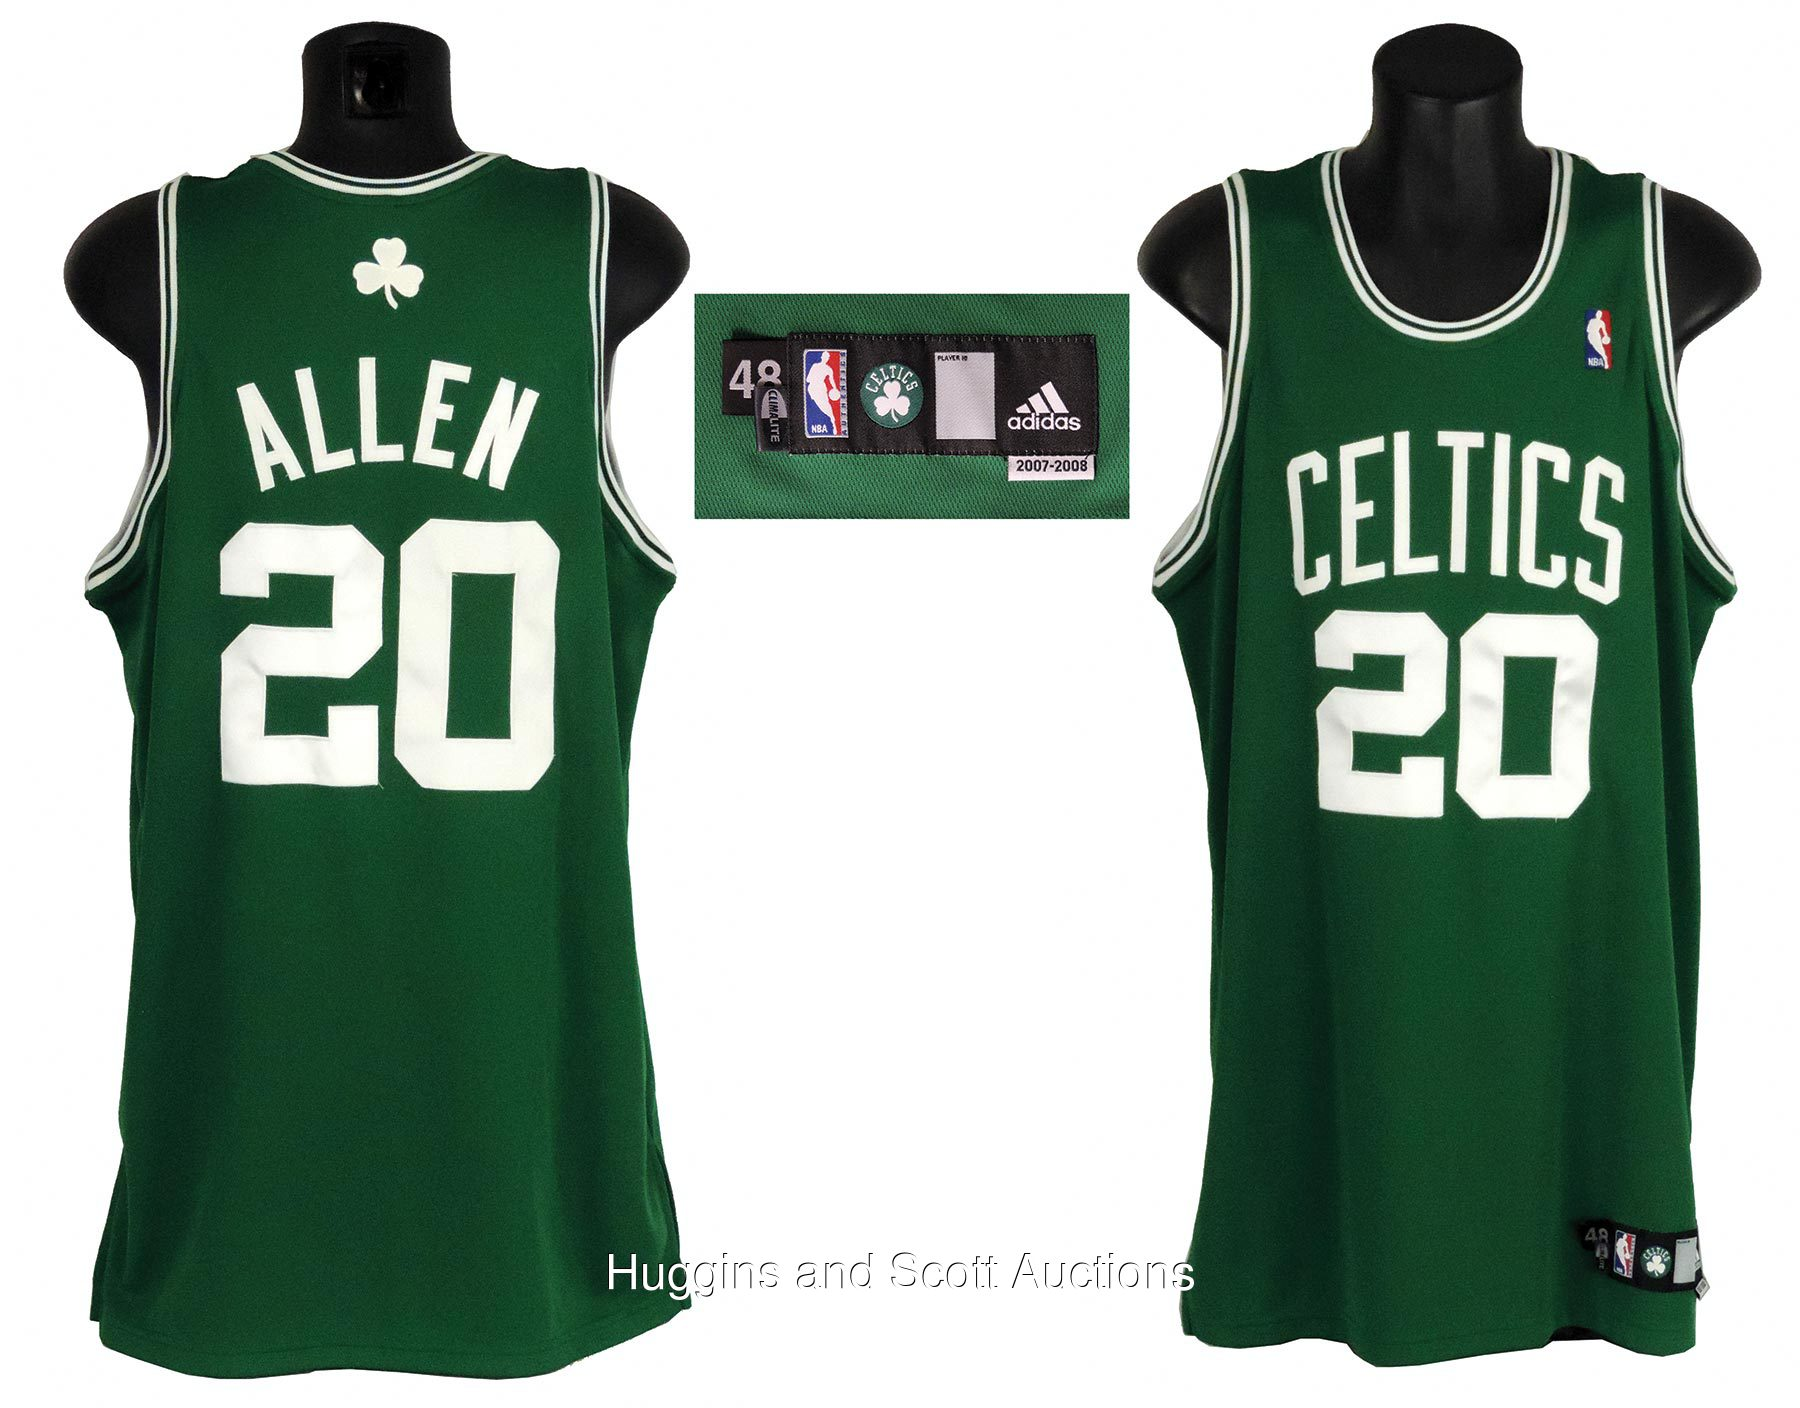 sneakers for cheap b71be 7e08a Ray Allen 2007-08 NBA Champion Boston Celtics Game-Worn Road ...